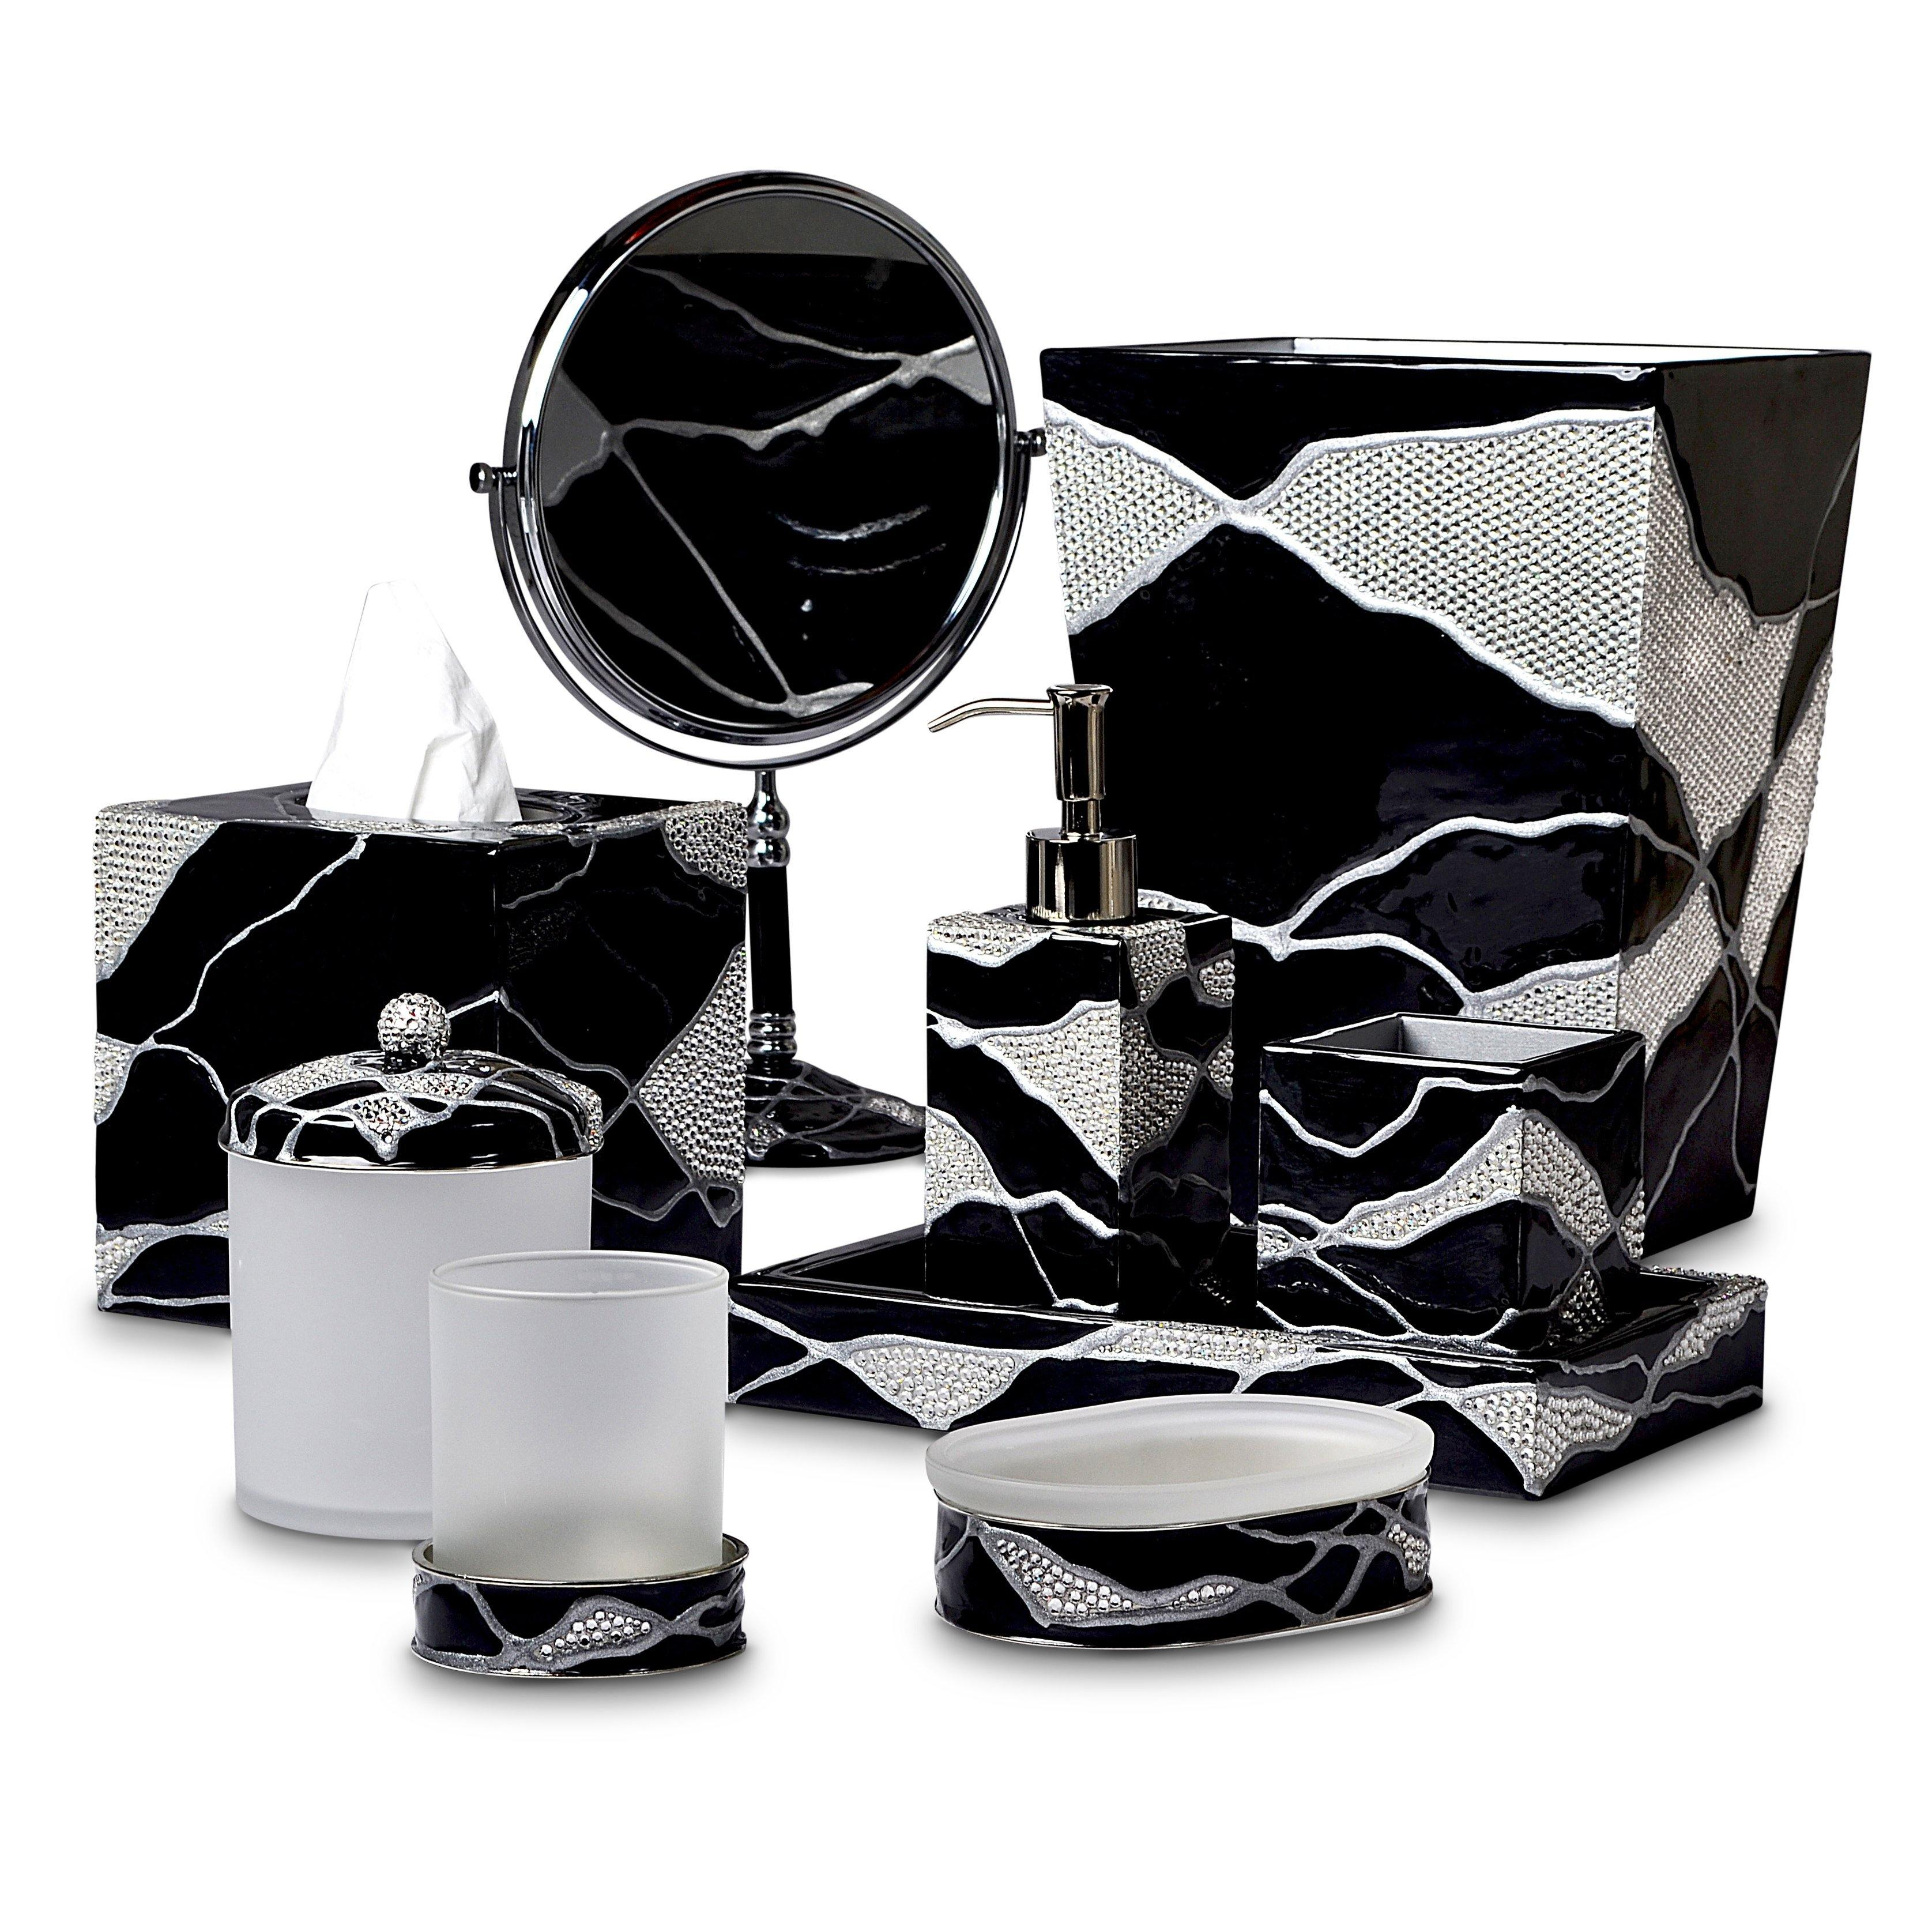 Genesis Black & Silver Bath Accessories by Mike + Ally